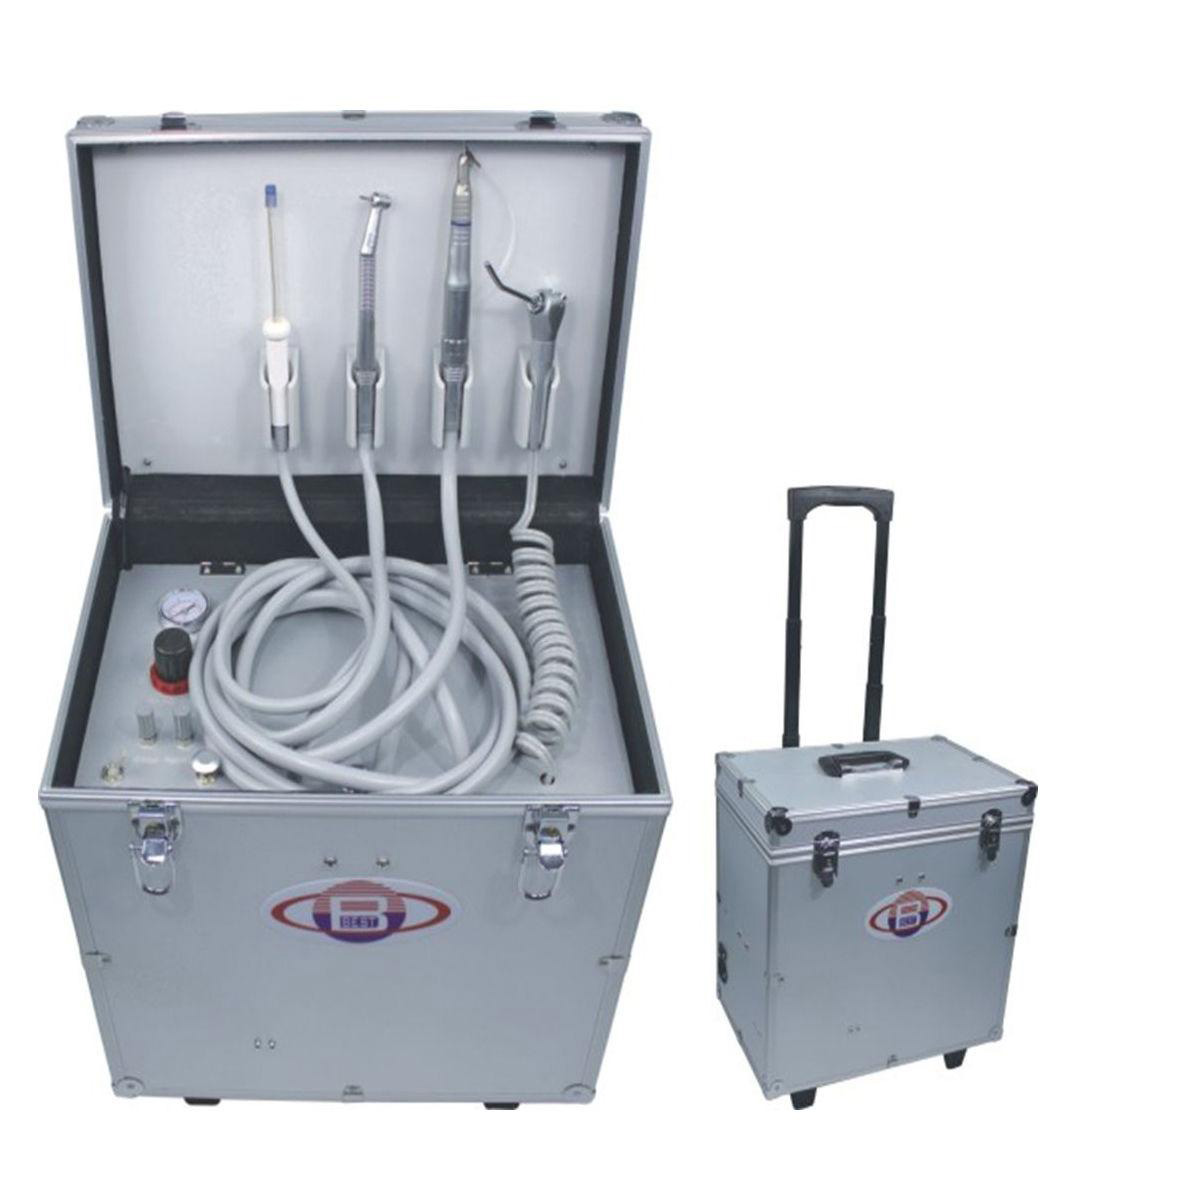 Dental Portable Turbine Unit W/ 3-Way Syringe+Suction+Air Compressor+HP Tube 2/4...